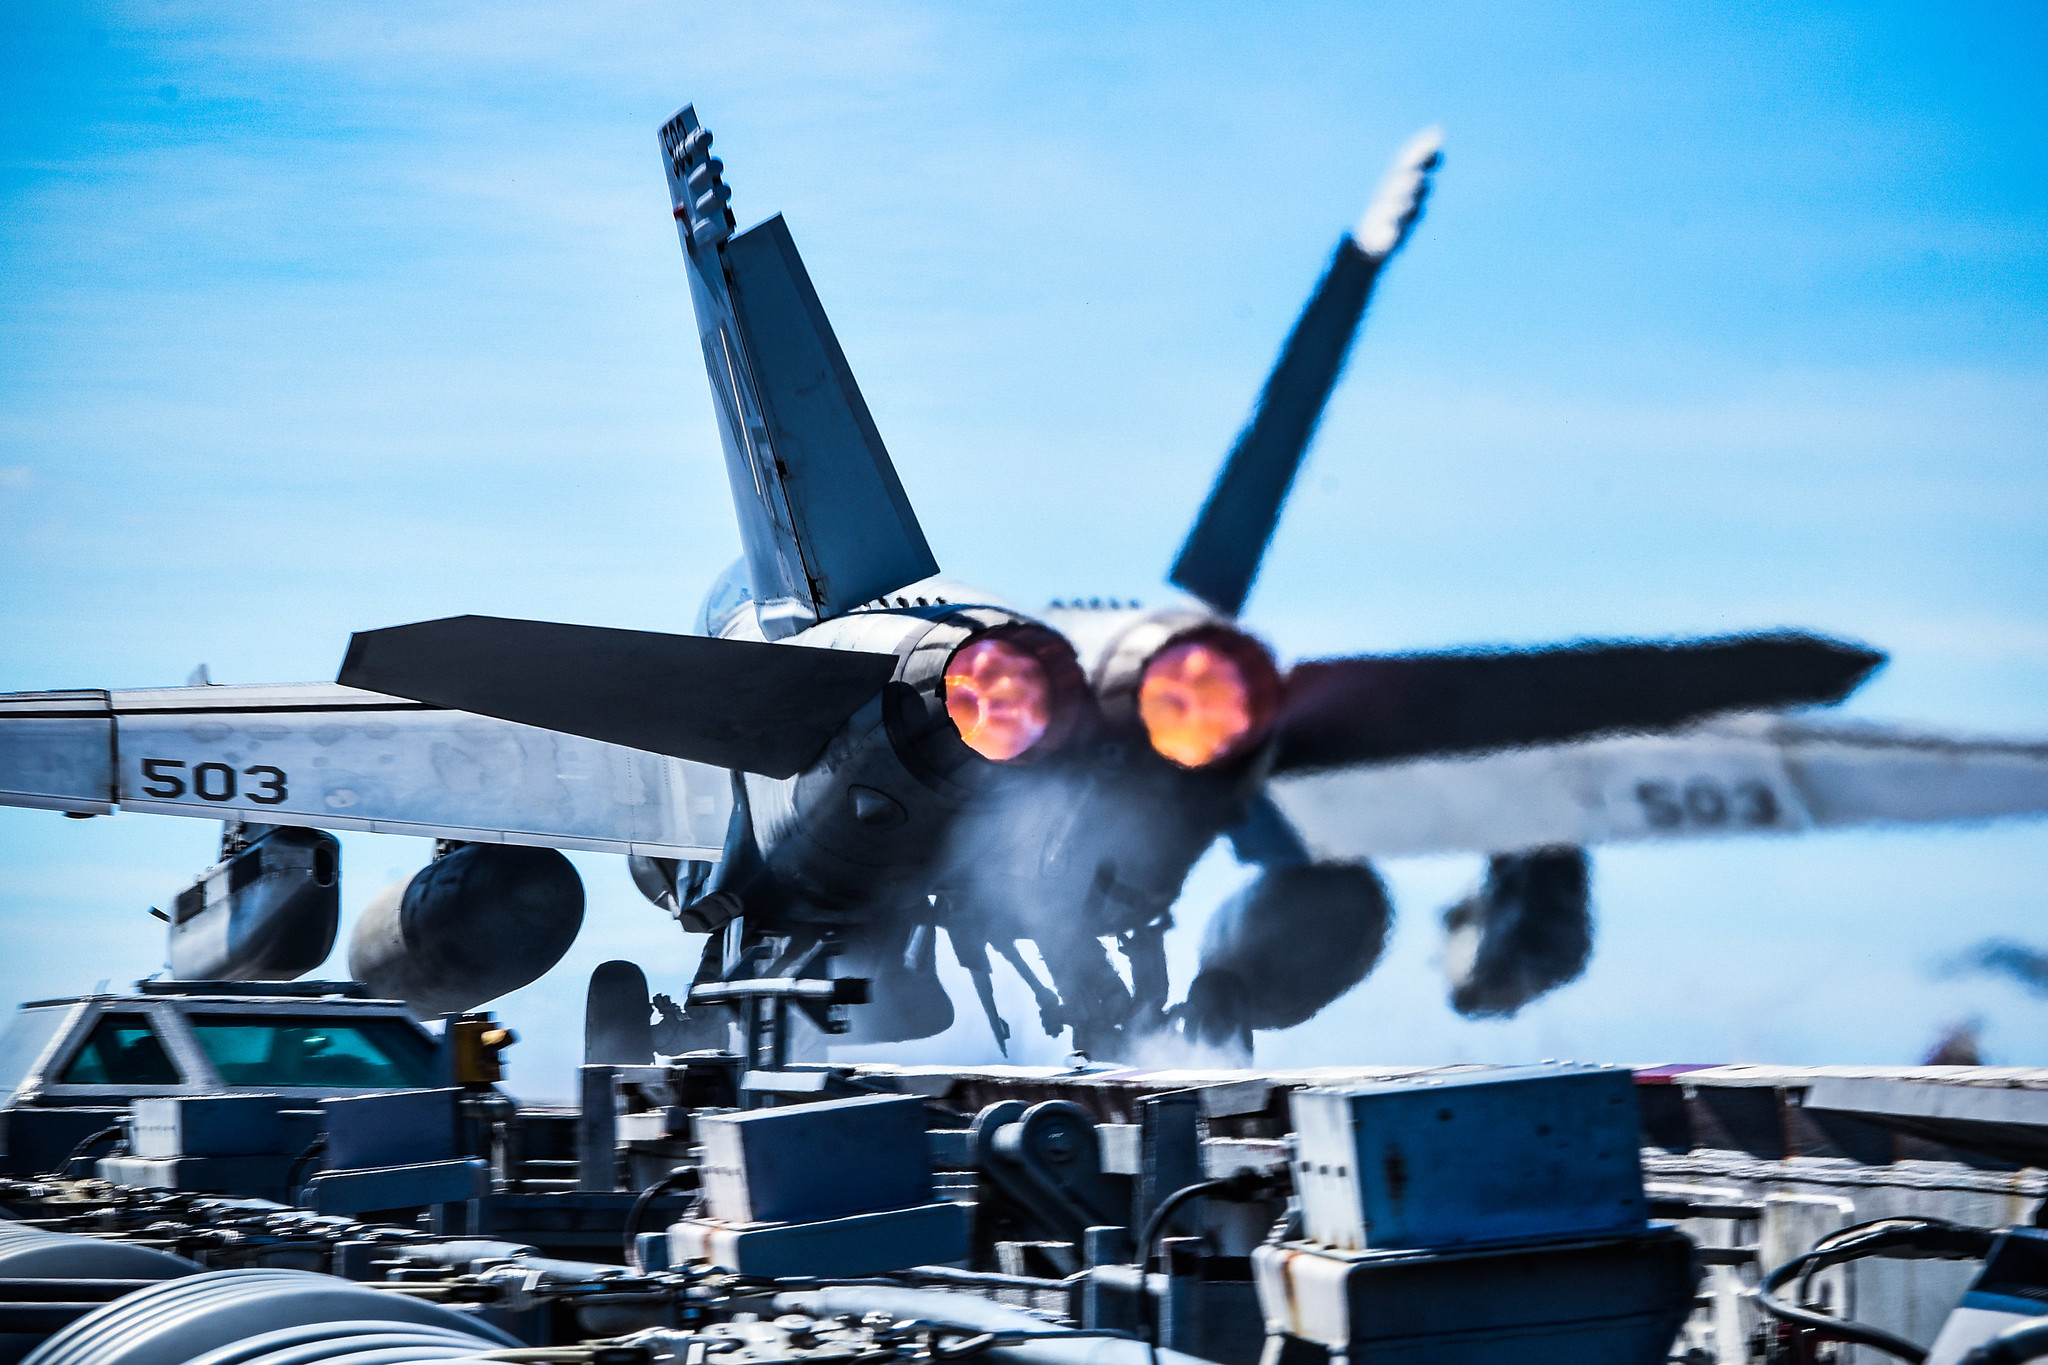 An E/A-18G Growler launches from the flight deck of the aircraft carrier USS Ronald Reagan (CVN 76) on Oct. 23, 2020, in the Philippine Sea. (MC3 Gabriel A. Martinez/Navy)